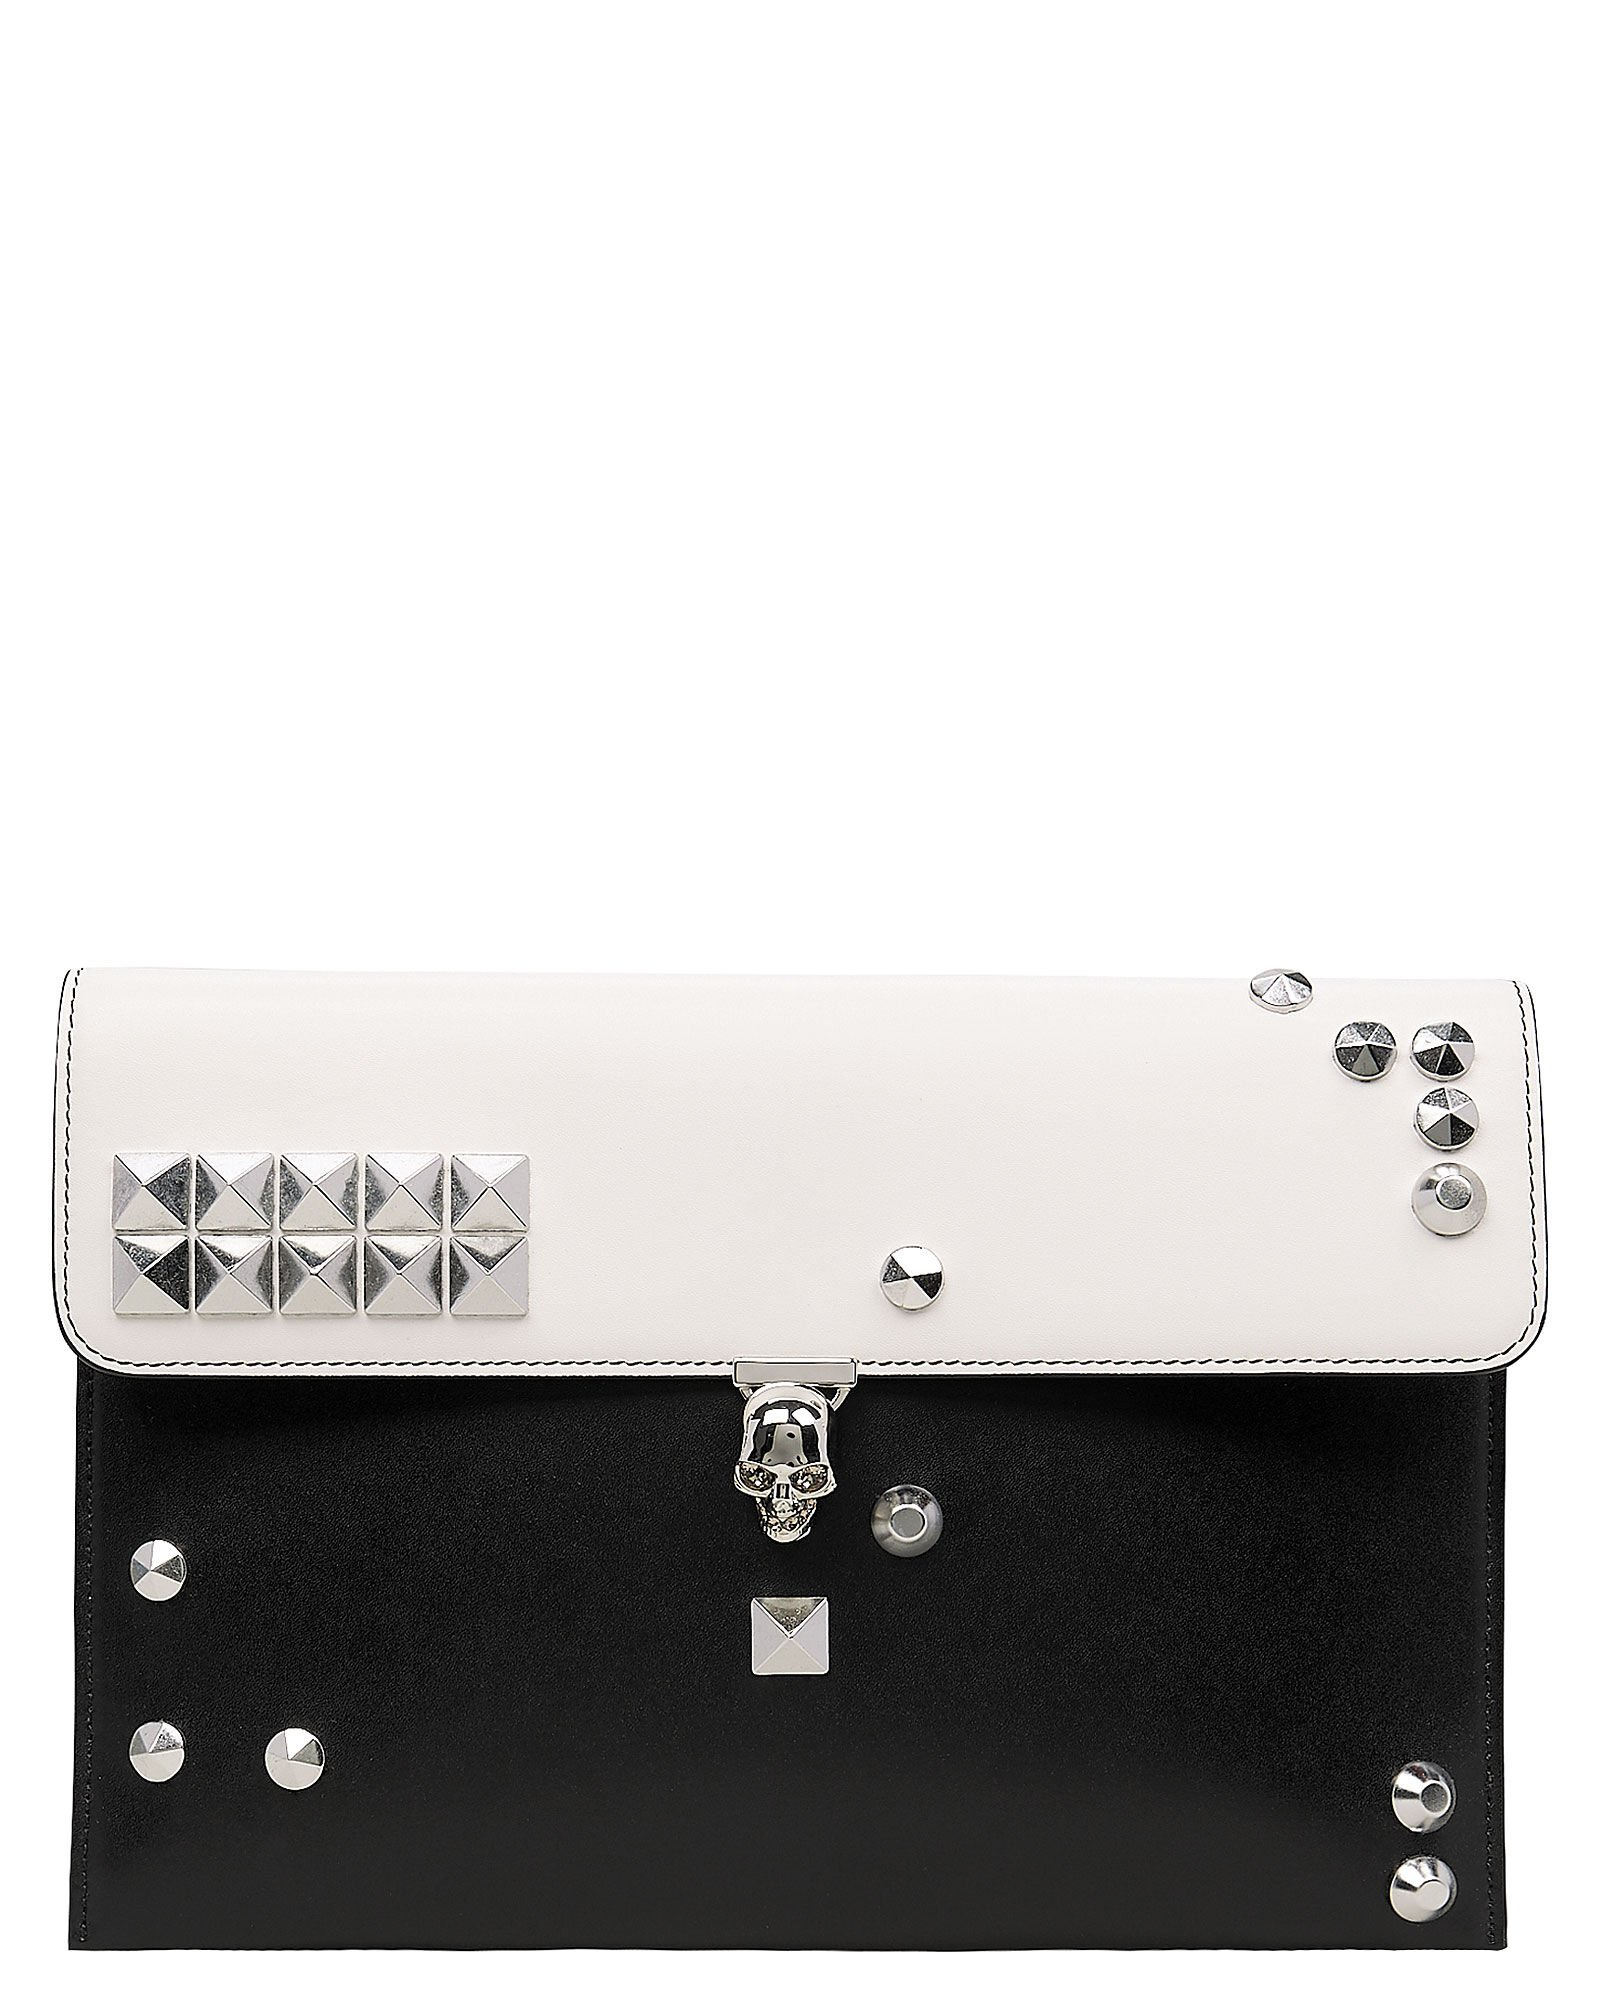 Skull Two-Tone Envelope Leather Clutch, BLK/WHT, hi-res